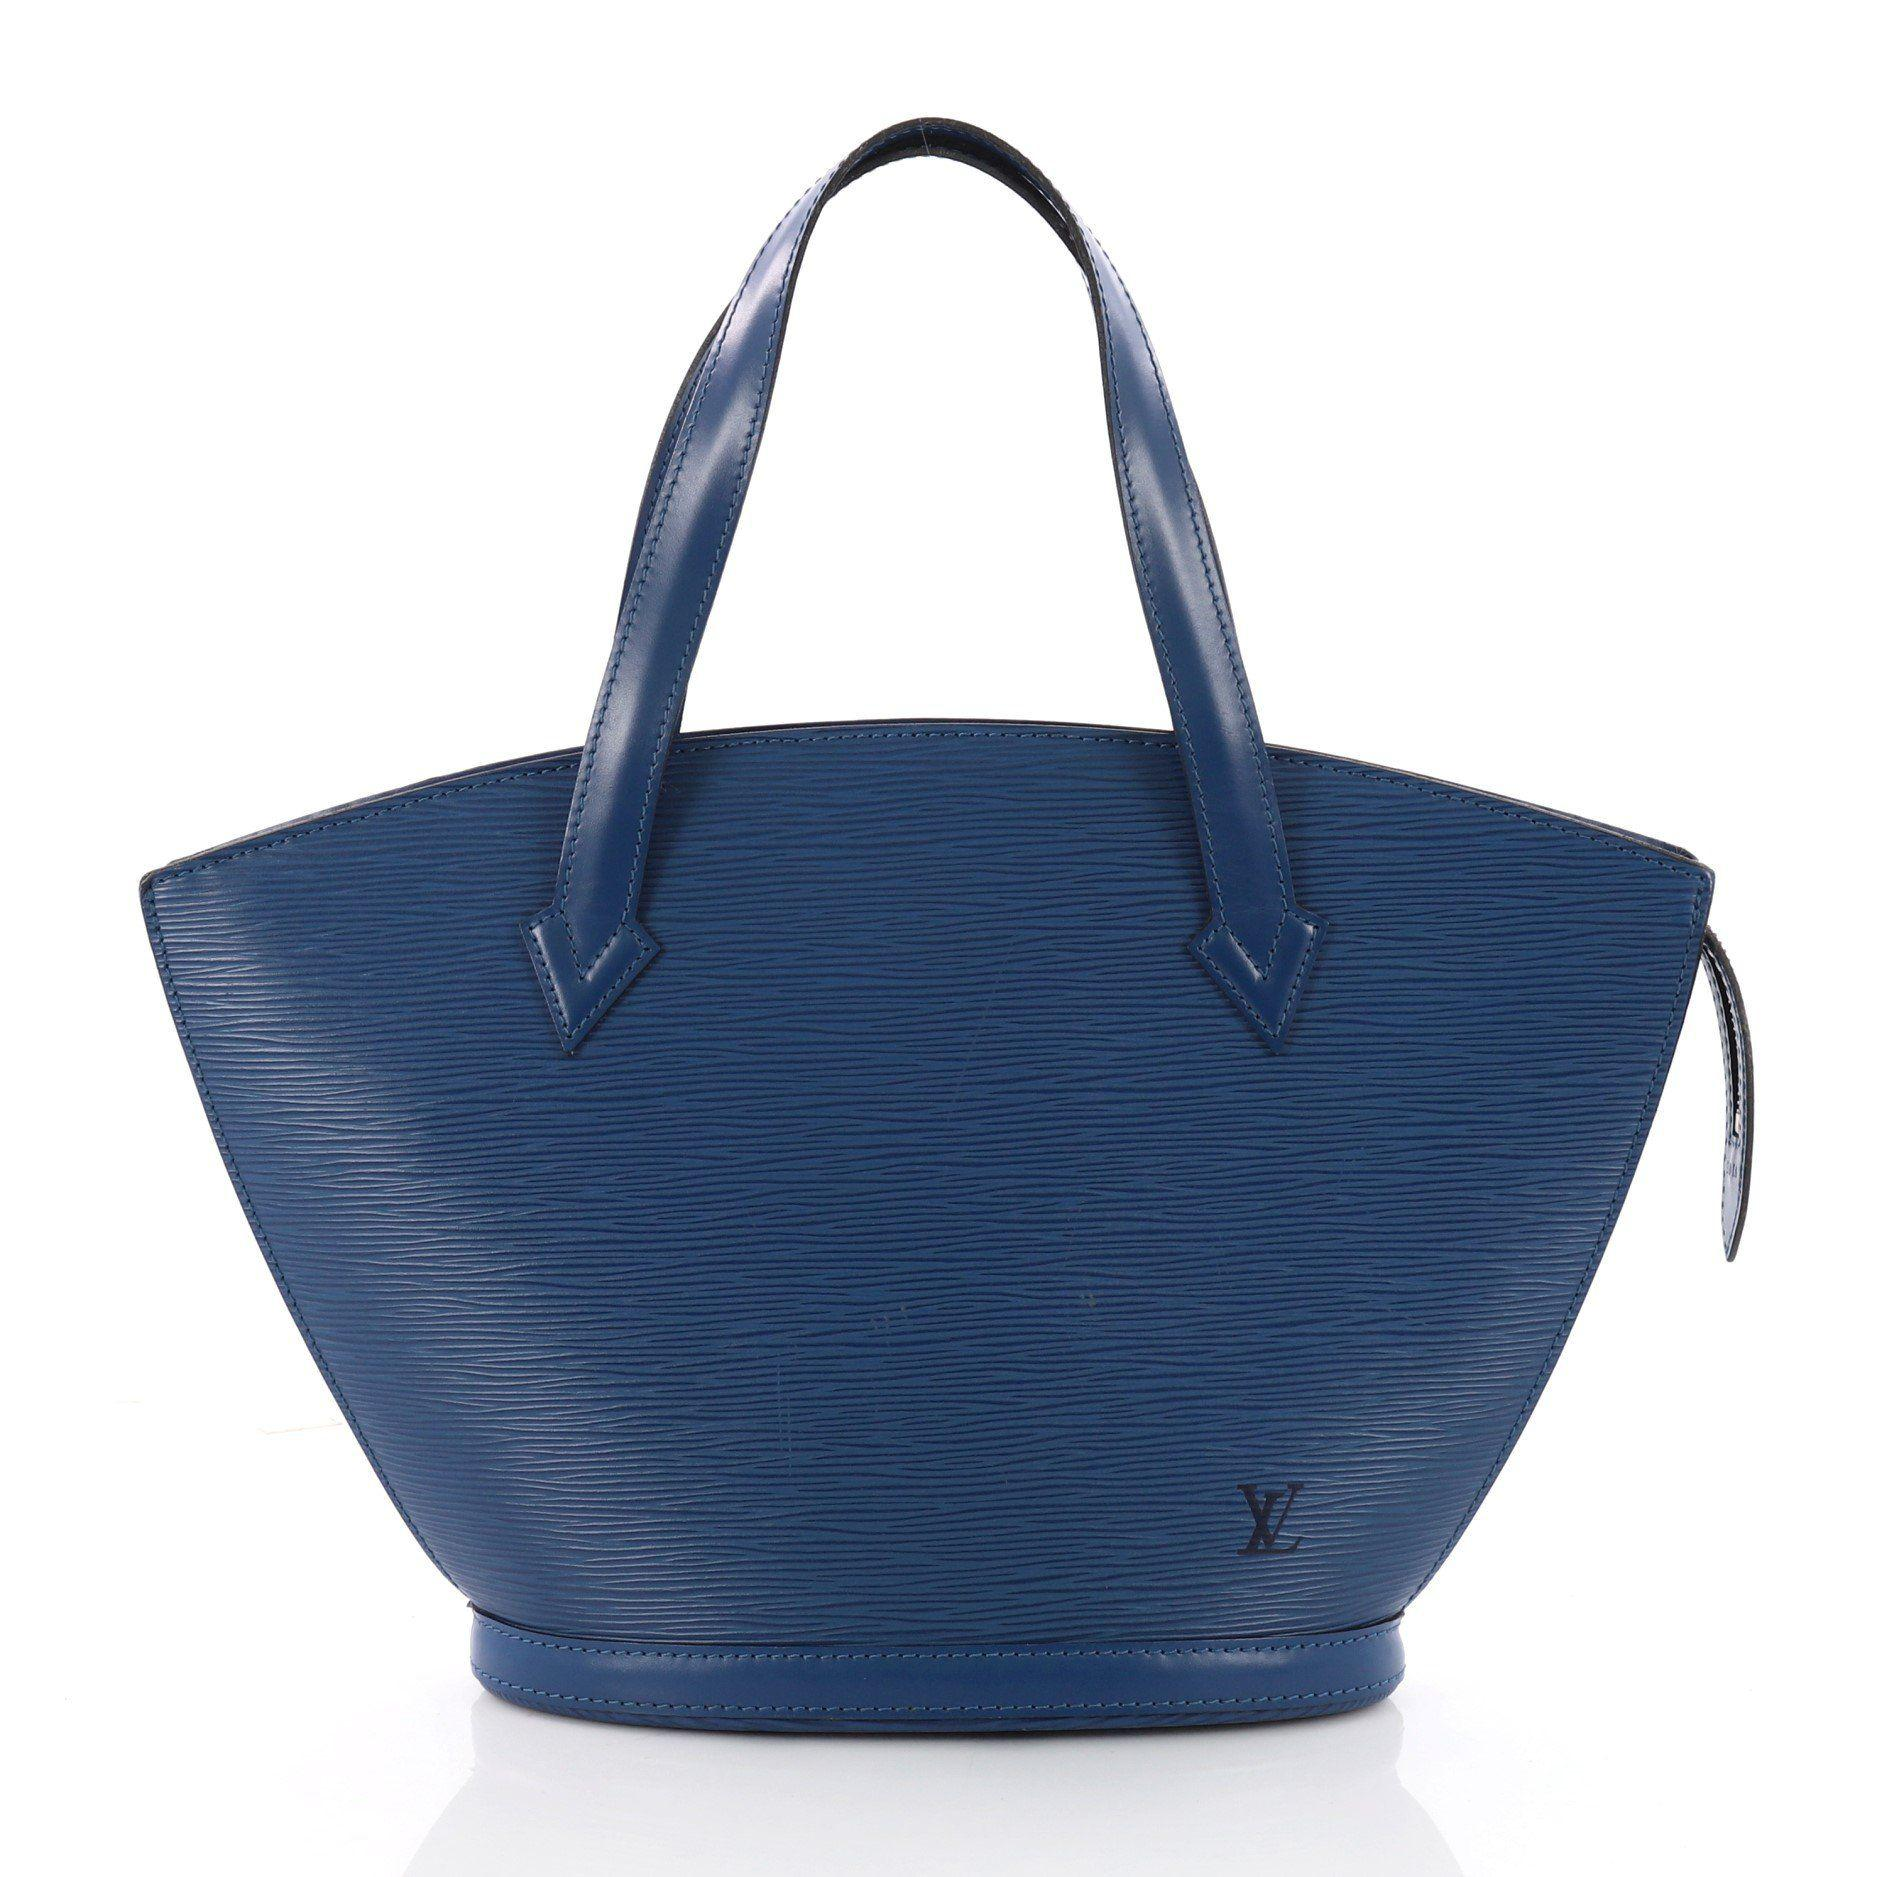 ff9b4482c0ec Lyst - Louis Vuitton Saint Jacques Handbag Epi Leather Pm in Blue